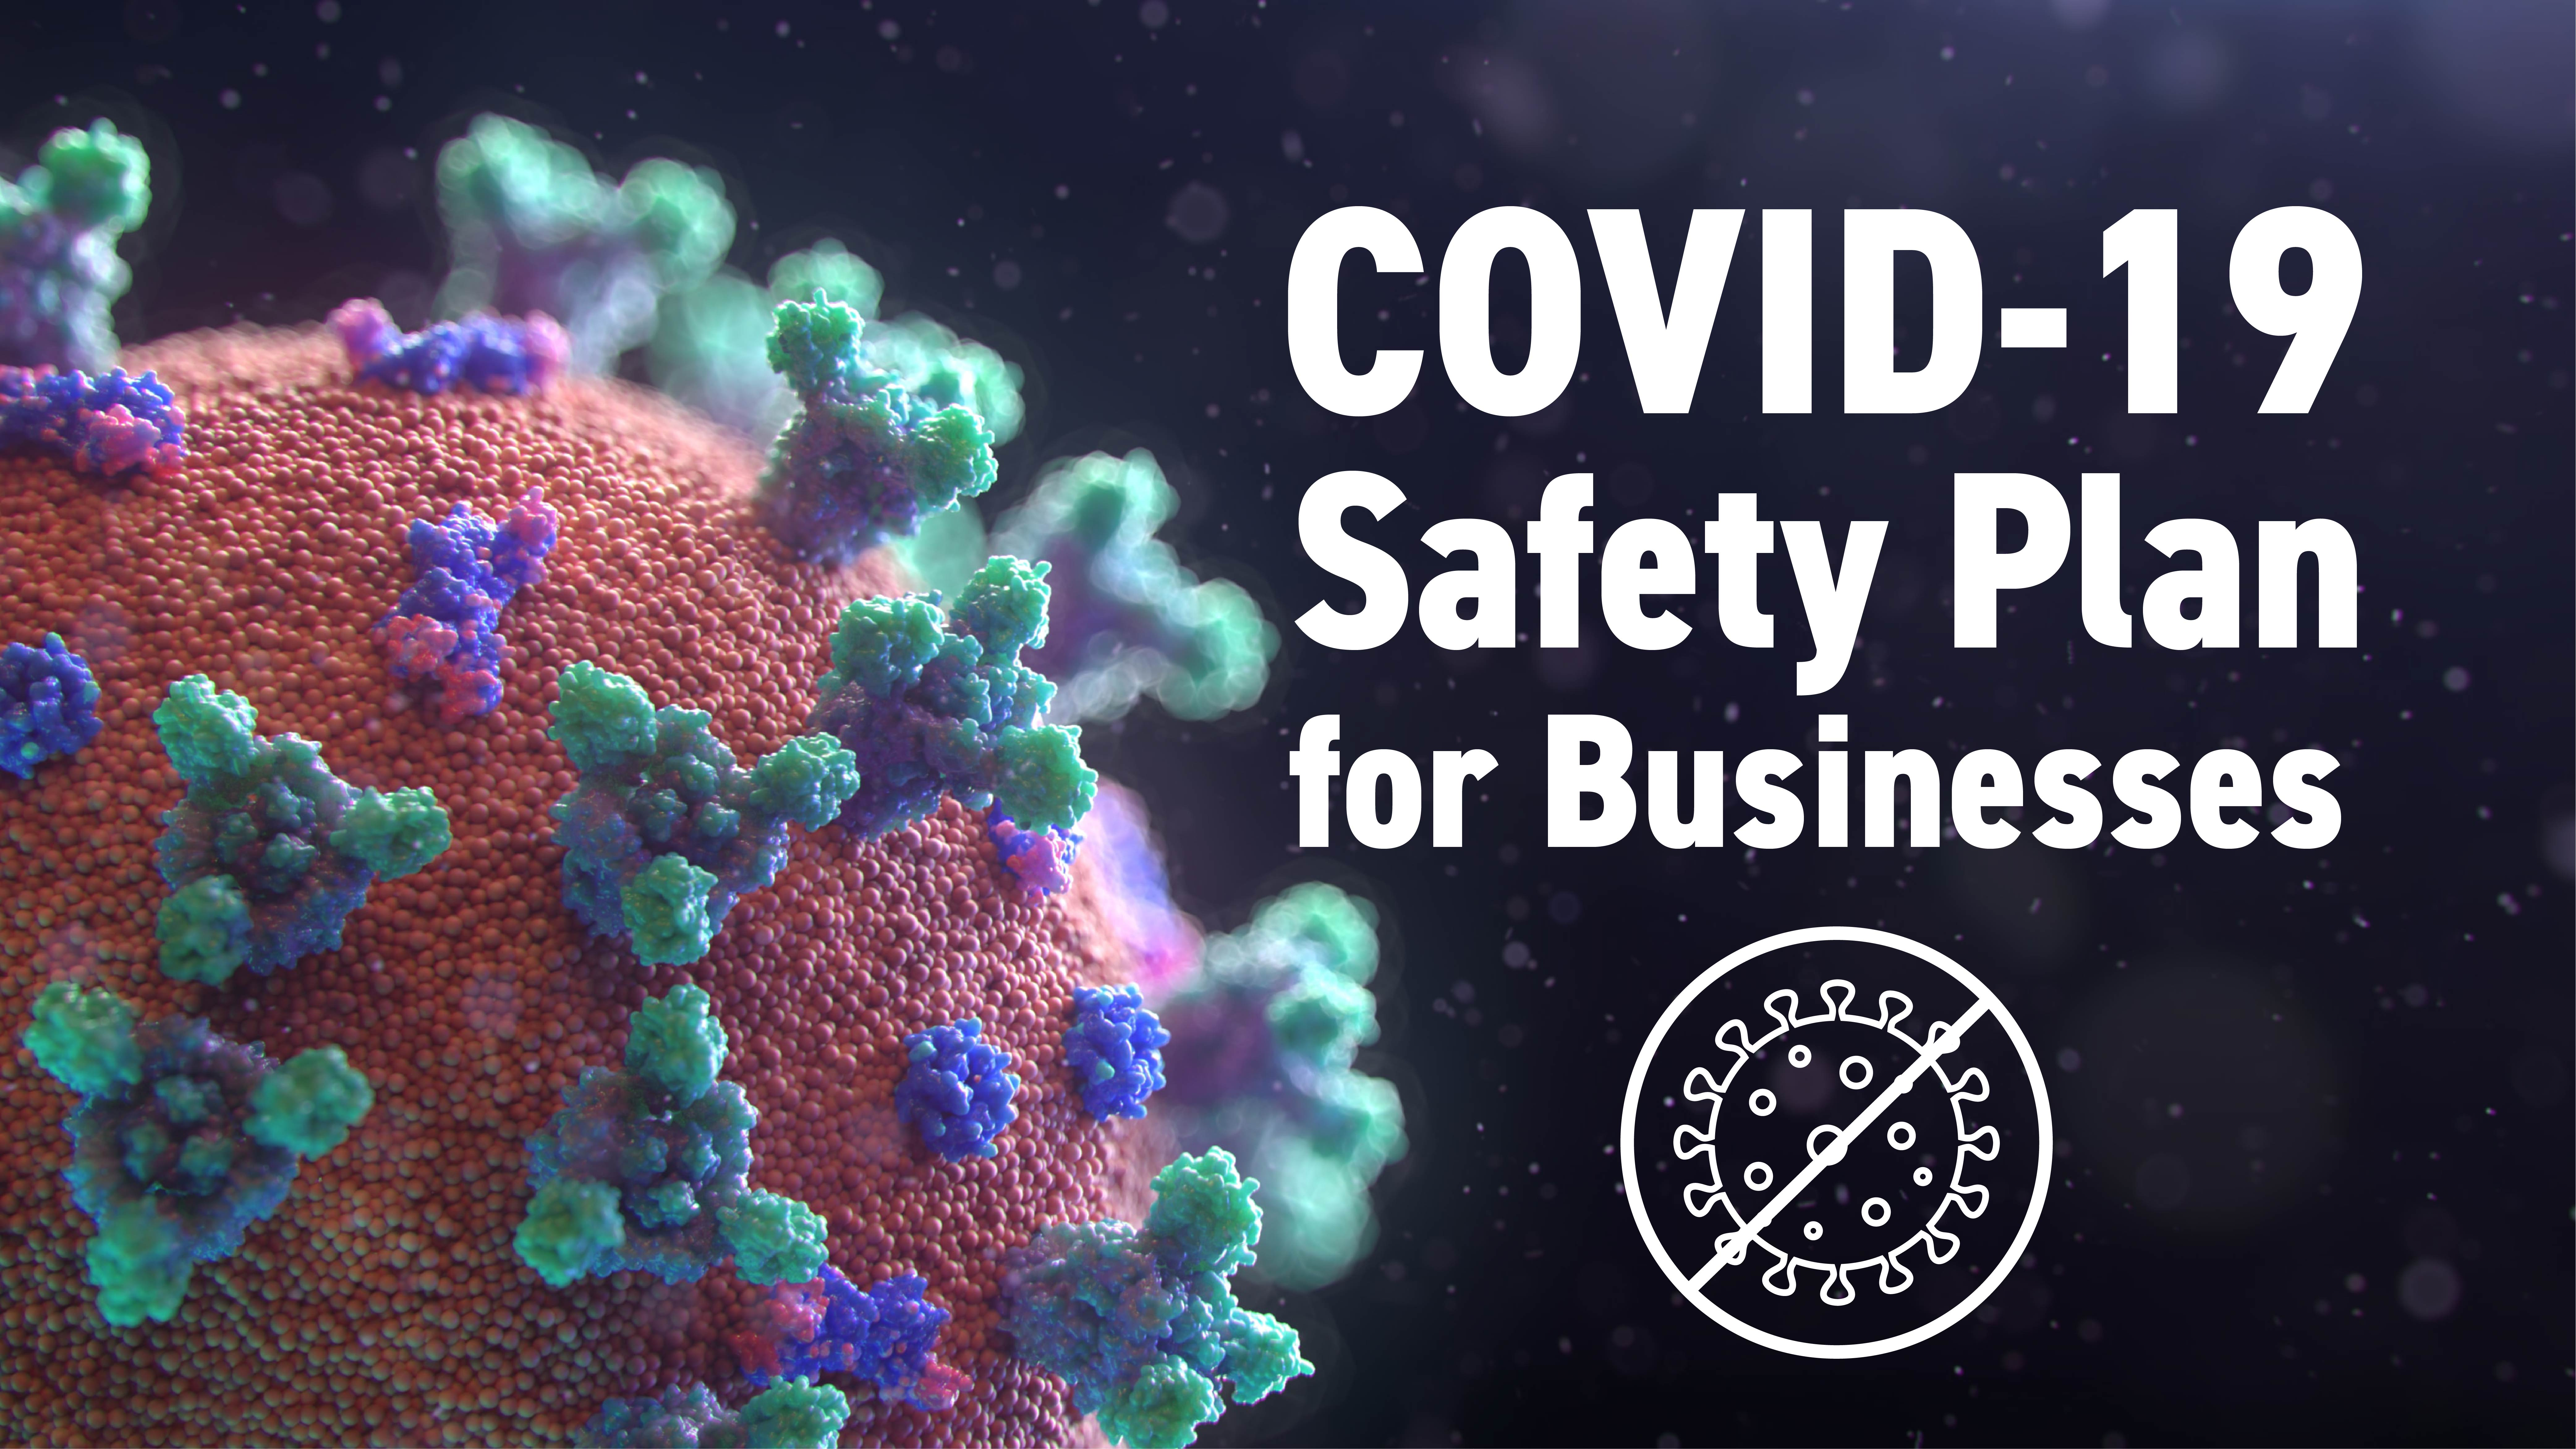 COVID-19 Safety Plan for Businesses